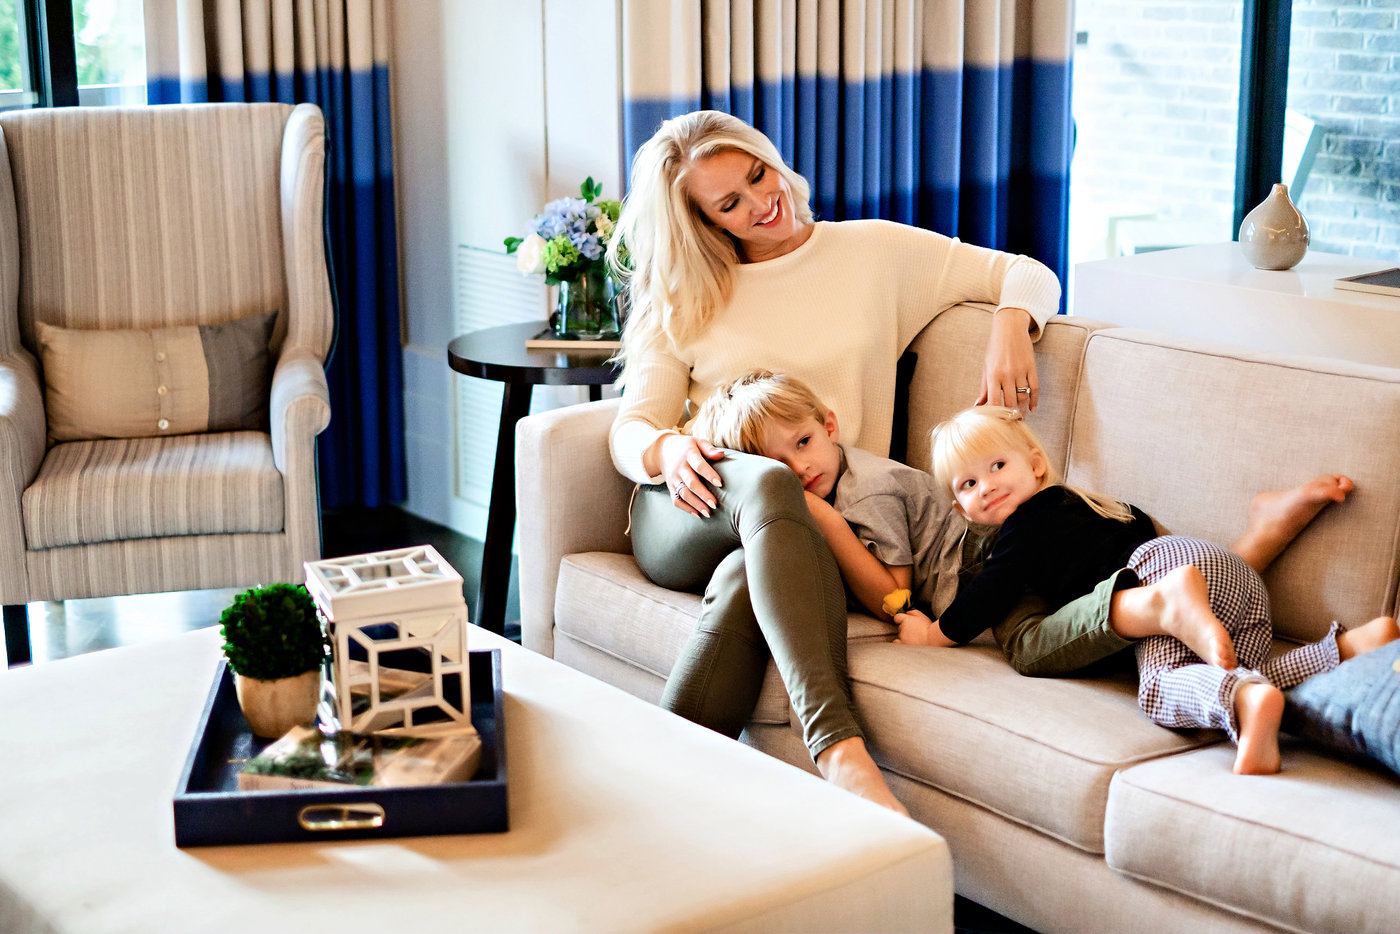 Curious how to get clean air at home? Atlanta Blogger Happily Hughes is sharing her top tips to getting clean air at home here!